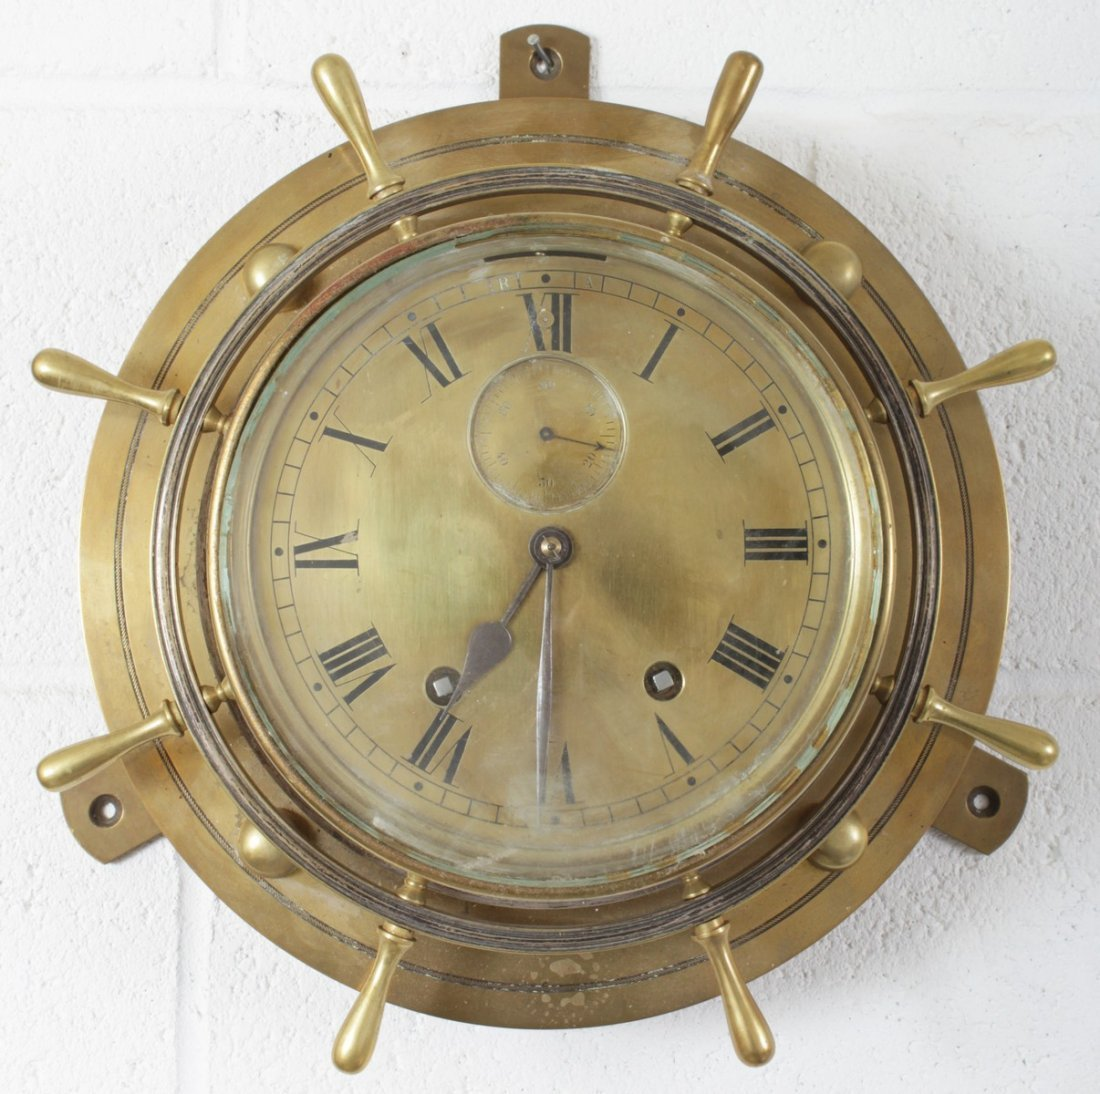 A GOOD LARGE BRASS SHIPS CLOCK striking on two bells.